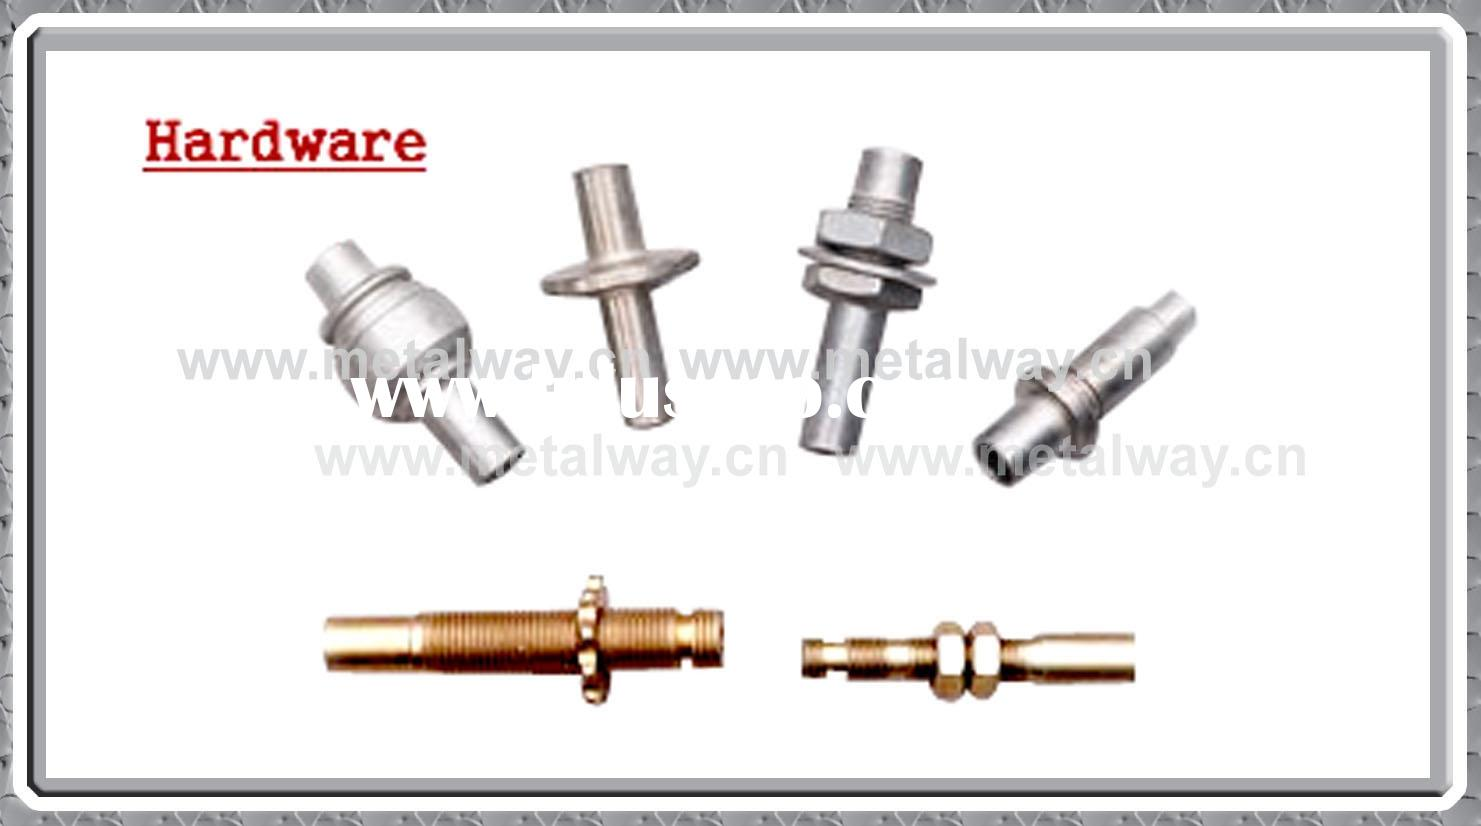 Control Cable Parts : Control cable parts manufacturers in